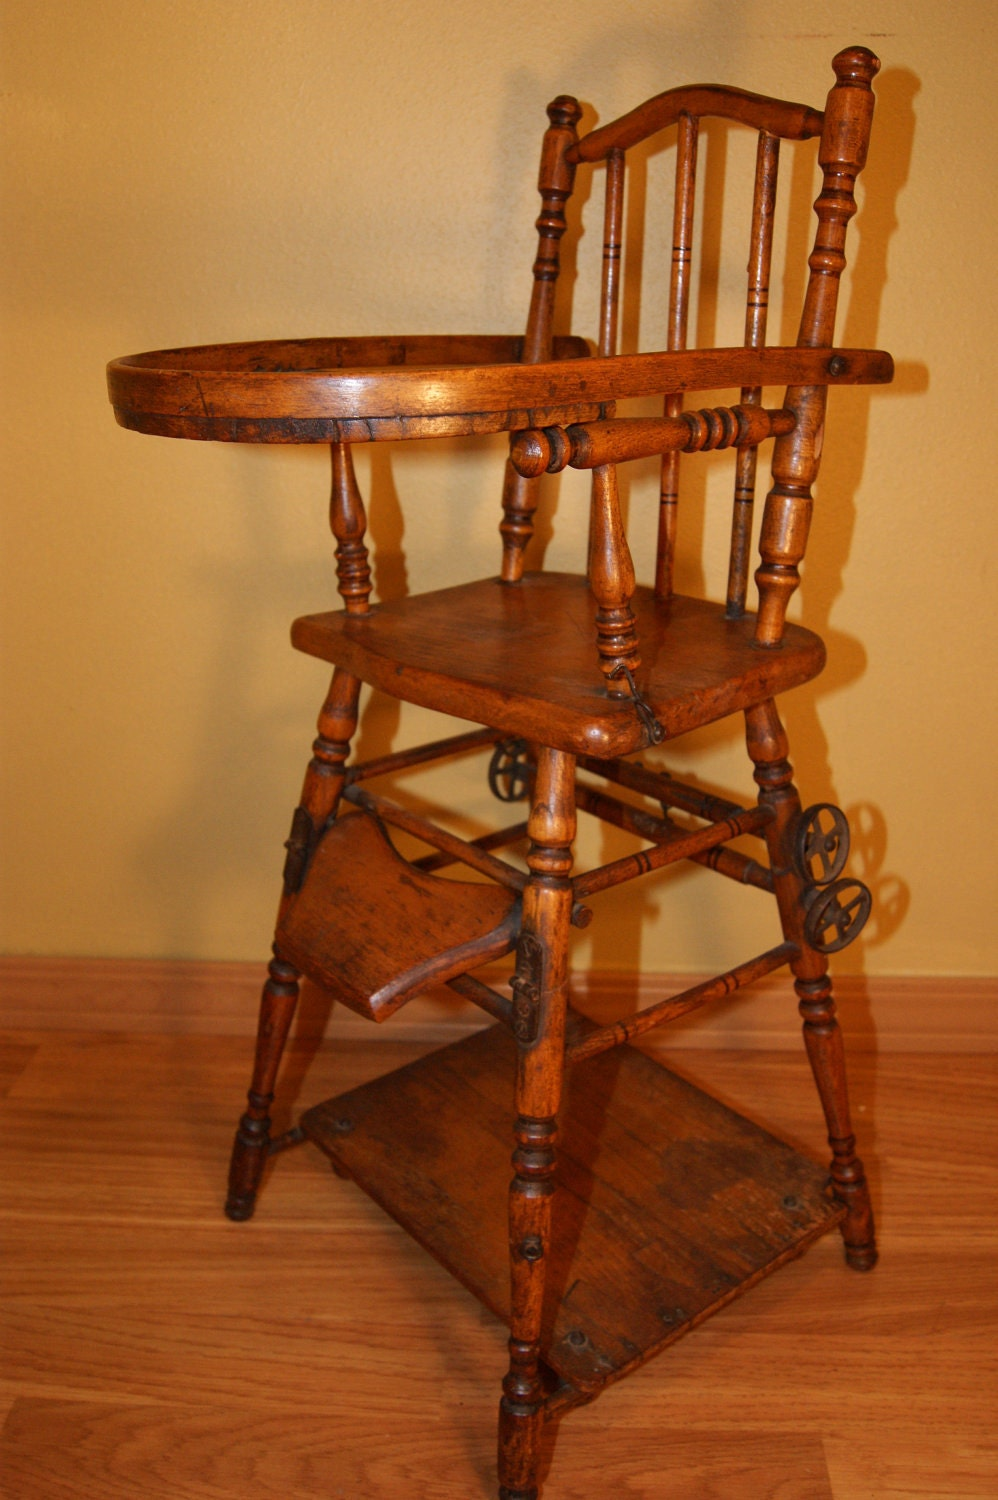 ... High Chair Sale by Sale Antique Doll High Chair Convertible ... - High Chair Sale - 28 Images - Baby Wooden High Chair For Sale